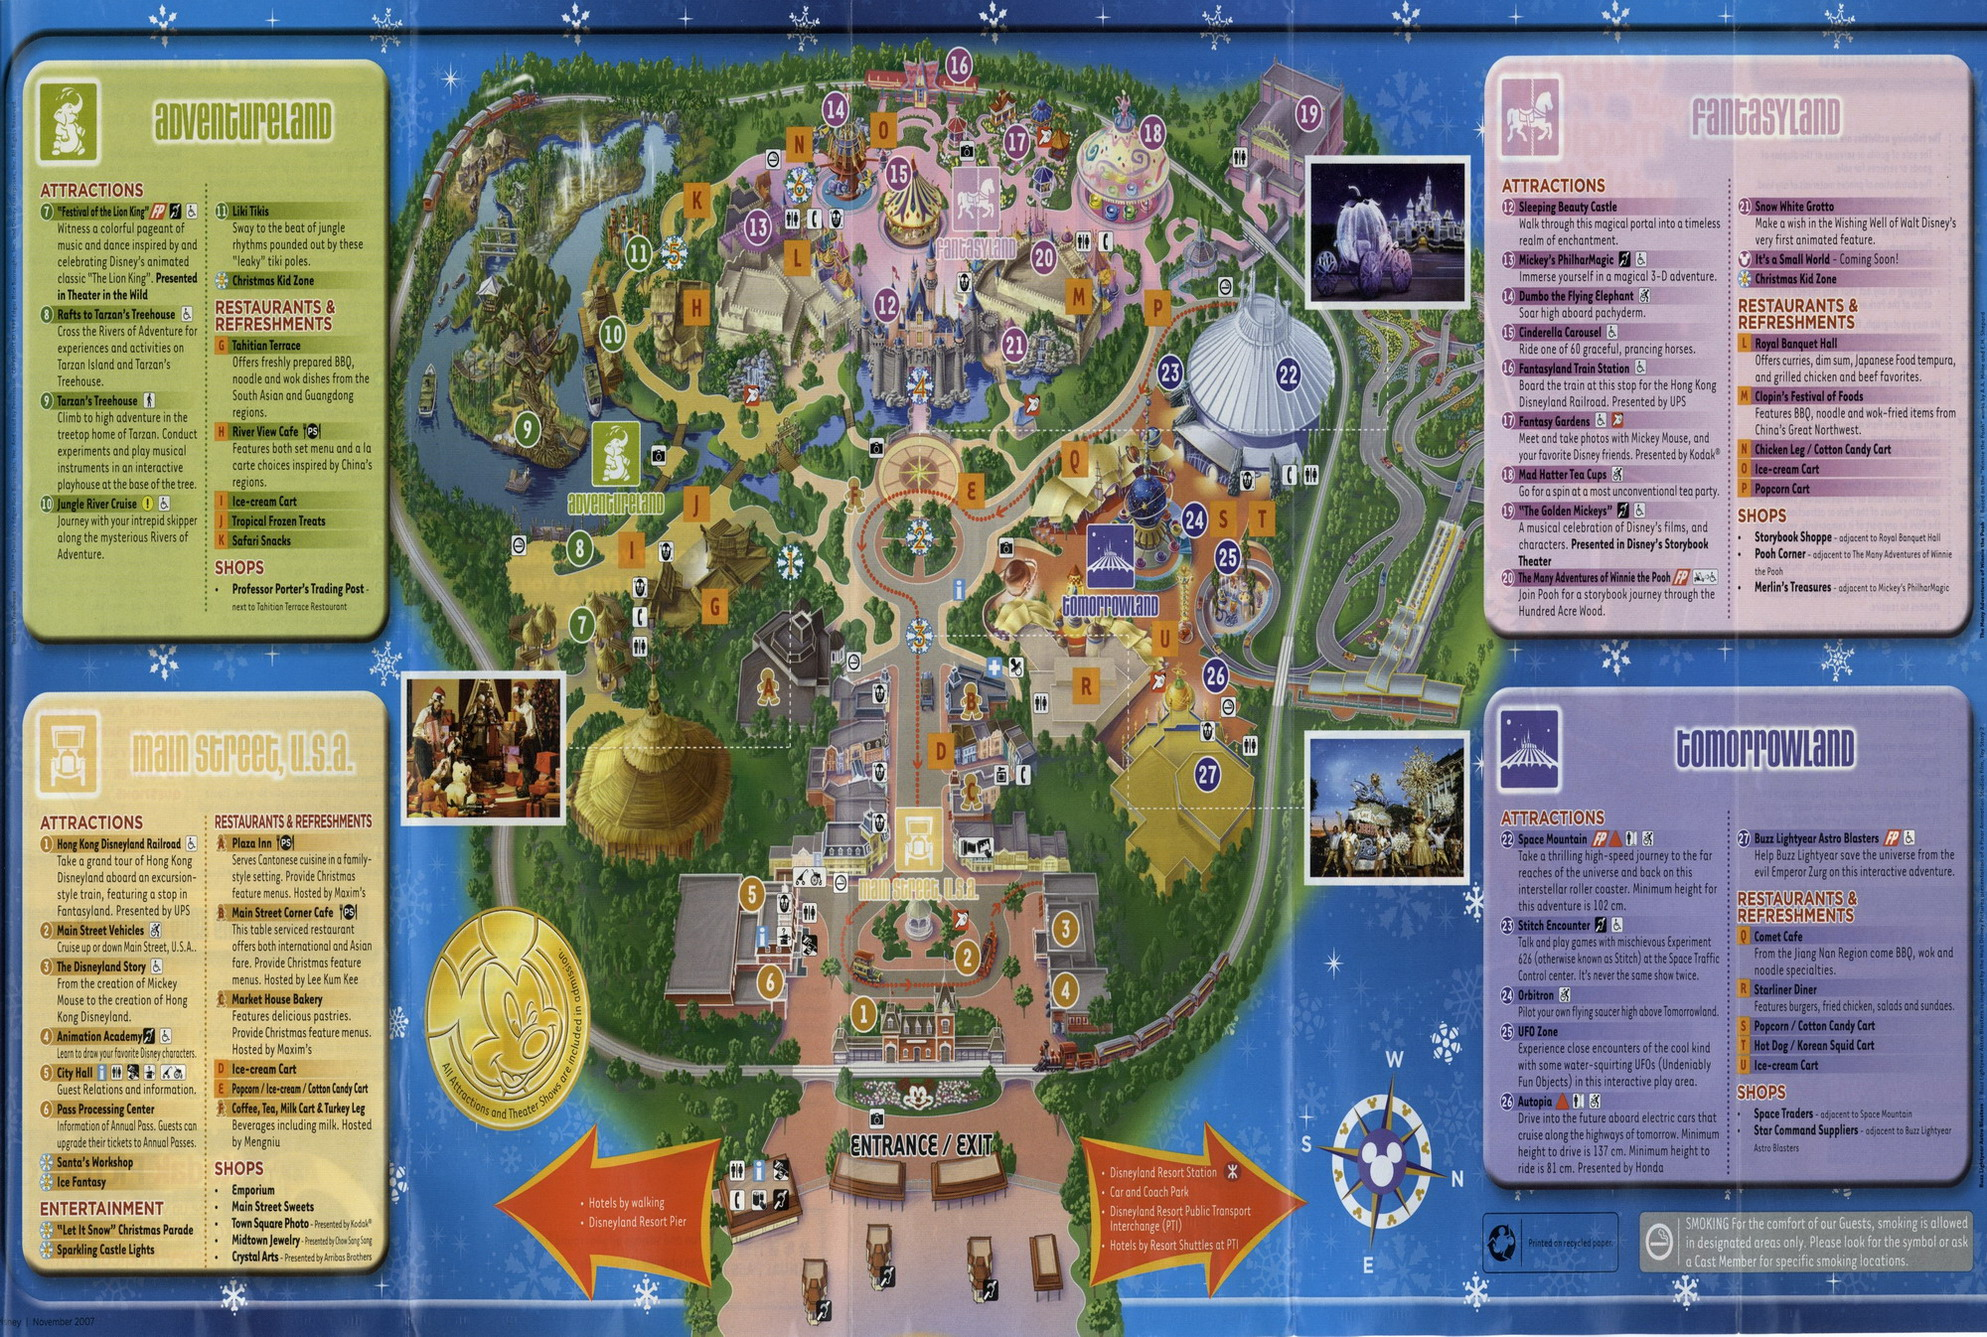 Hong Kong Disneyland Map Hong Kong Disneyland Park Map   Hong Kong Maps   China Tour Advisors Hong Kong Disneyland Map